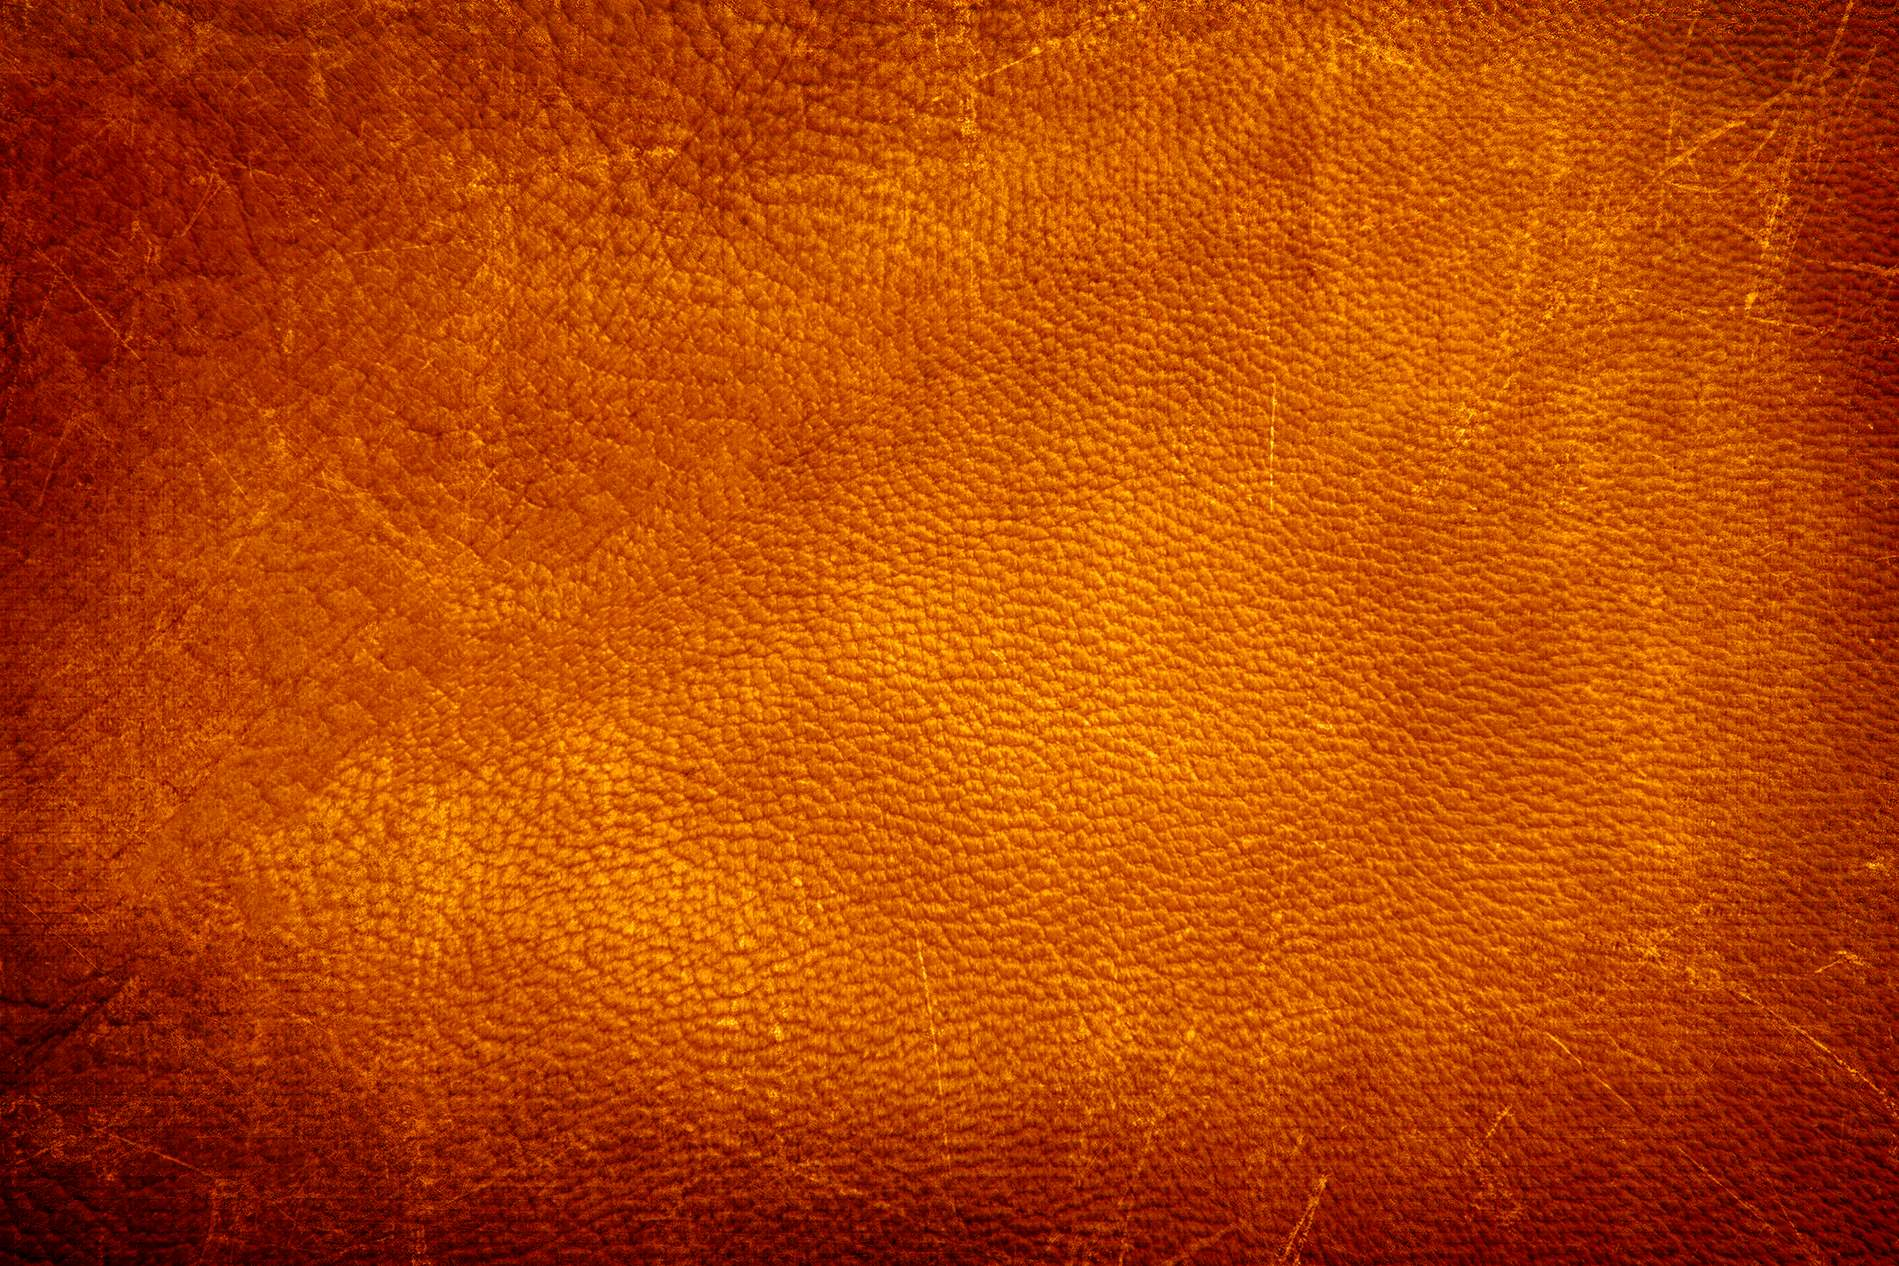 Grunge orange leather texture photohdx for Textures and backgrounds